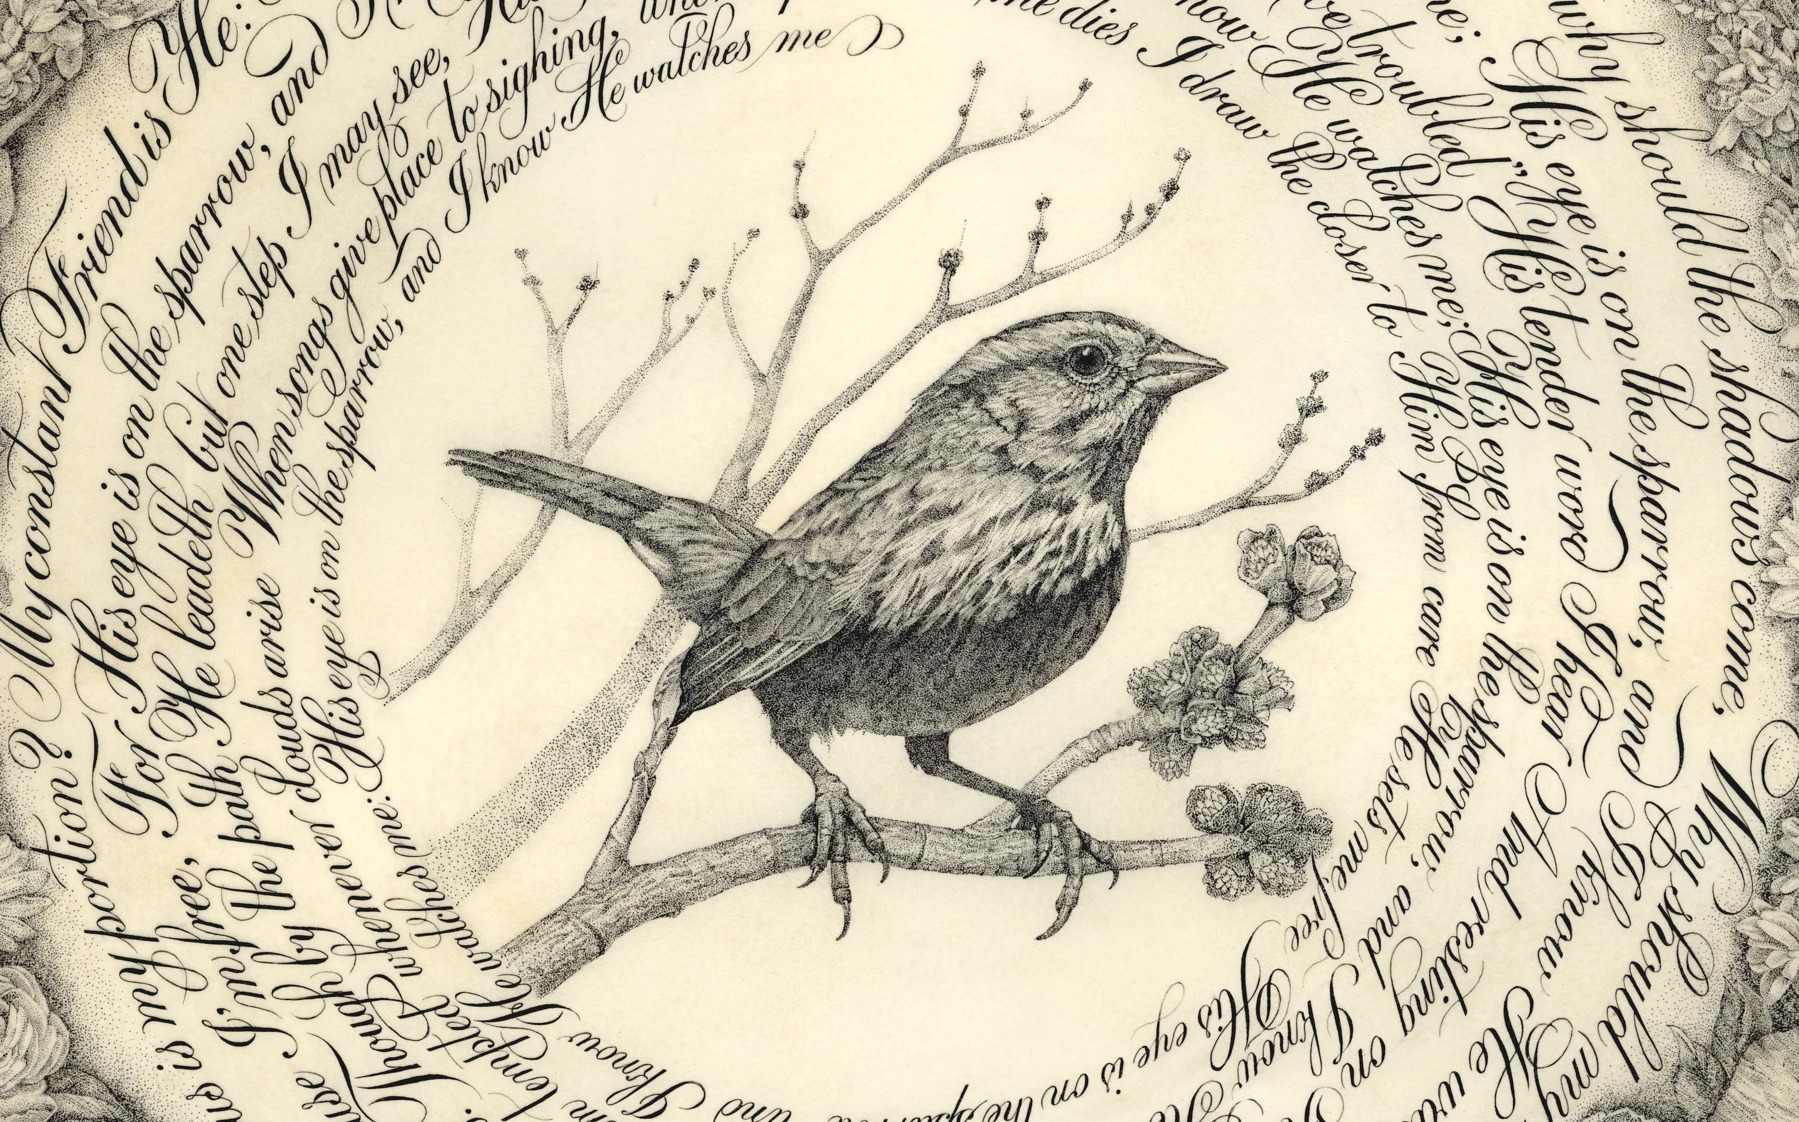 An ink pen drawing of a sparrow